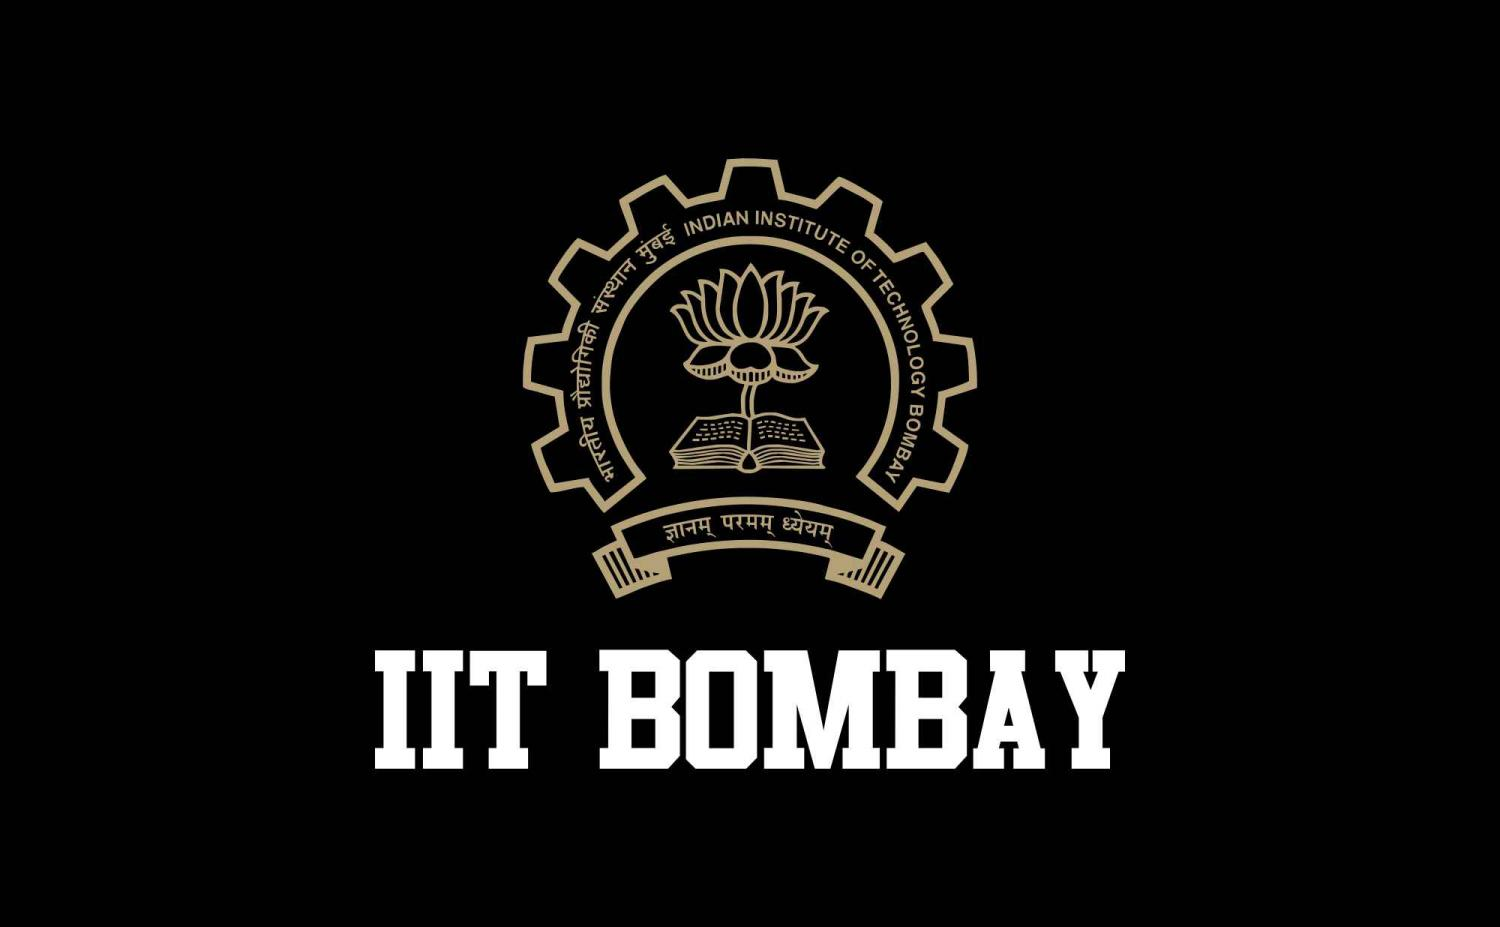 CFP: Fluid Mechanics and Fluid Power Conference @ IIT Bombay [Dec 10-12]: Submit by Jun 30